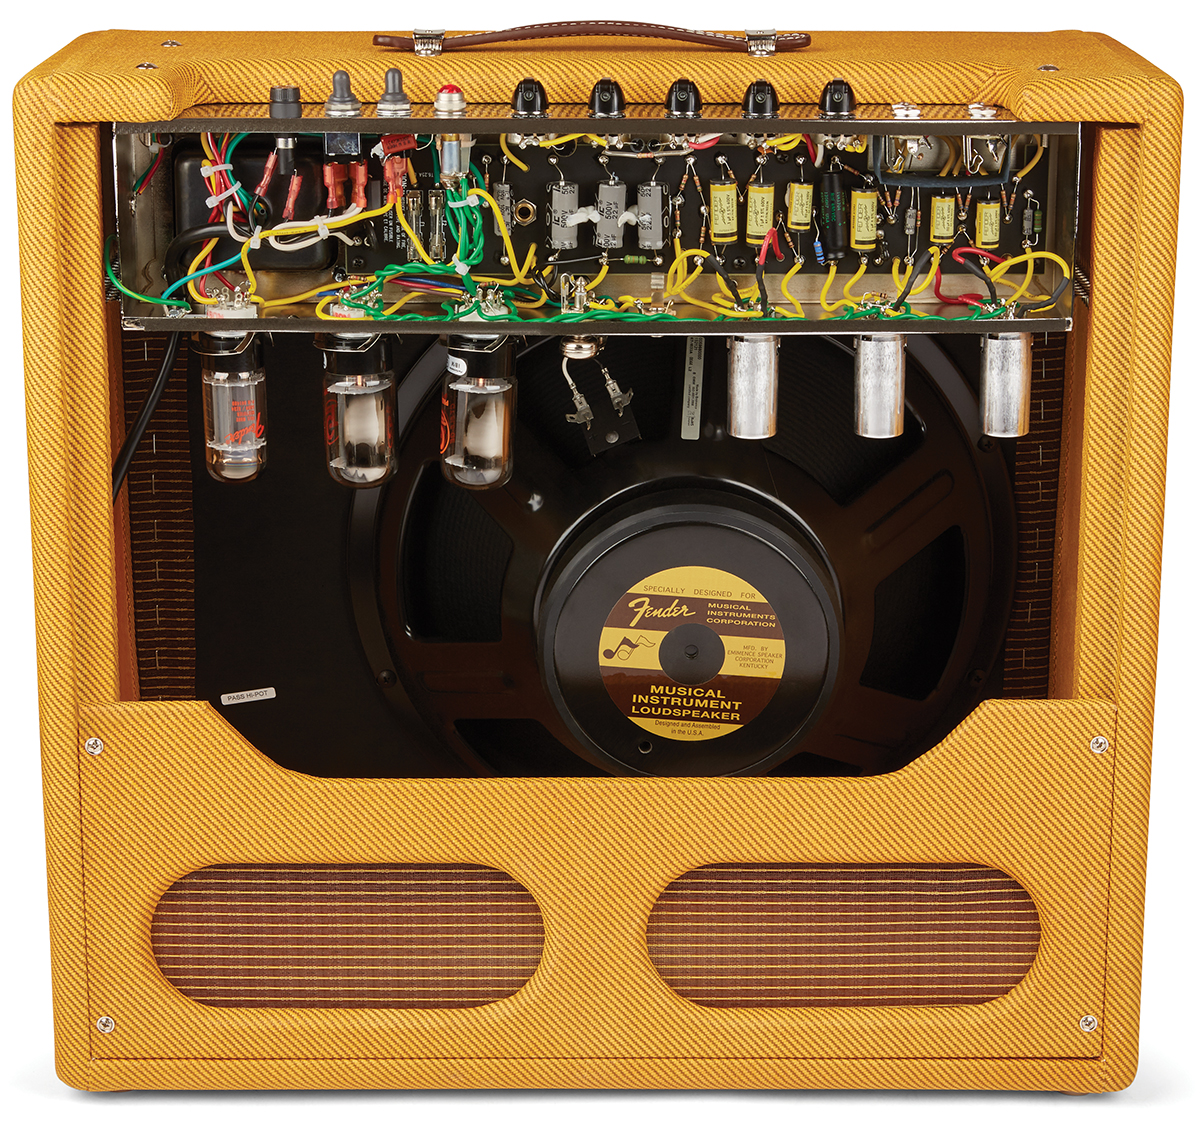 Fender 57 Custom Pro Amp The Guitar Magazine 1950s Fuse Box Vintage Examples Shipped With A Jensen Alnico P15n But This Was Often Changed For Jbl In Common Victorias Narrow Panel